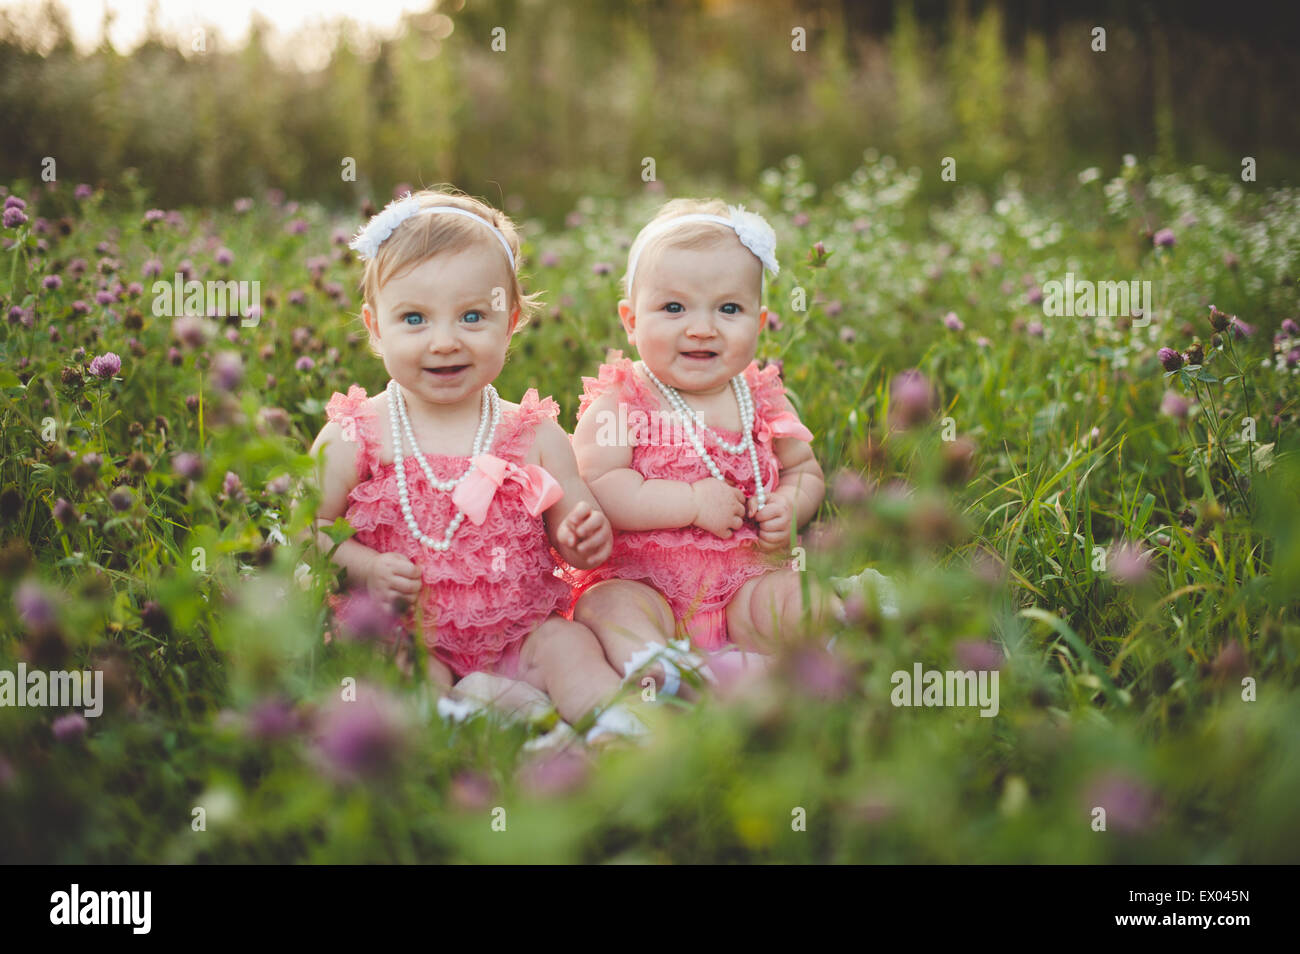 Portrait of baby twin sisters sitting in wild flower meadow wearing pink party dresses - Stock Image